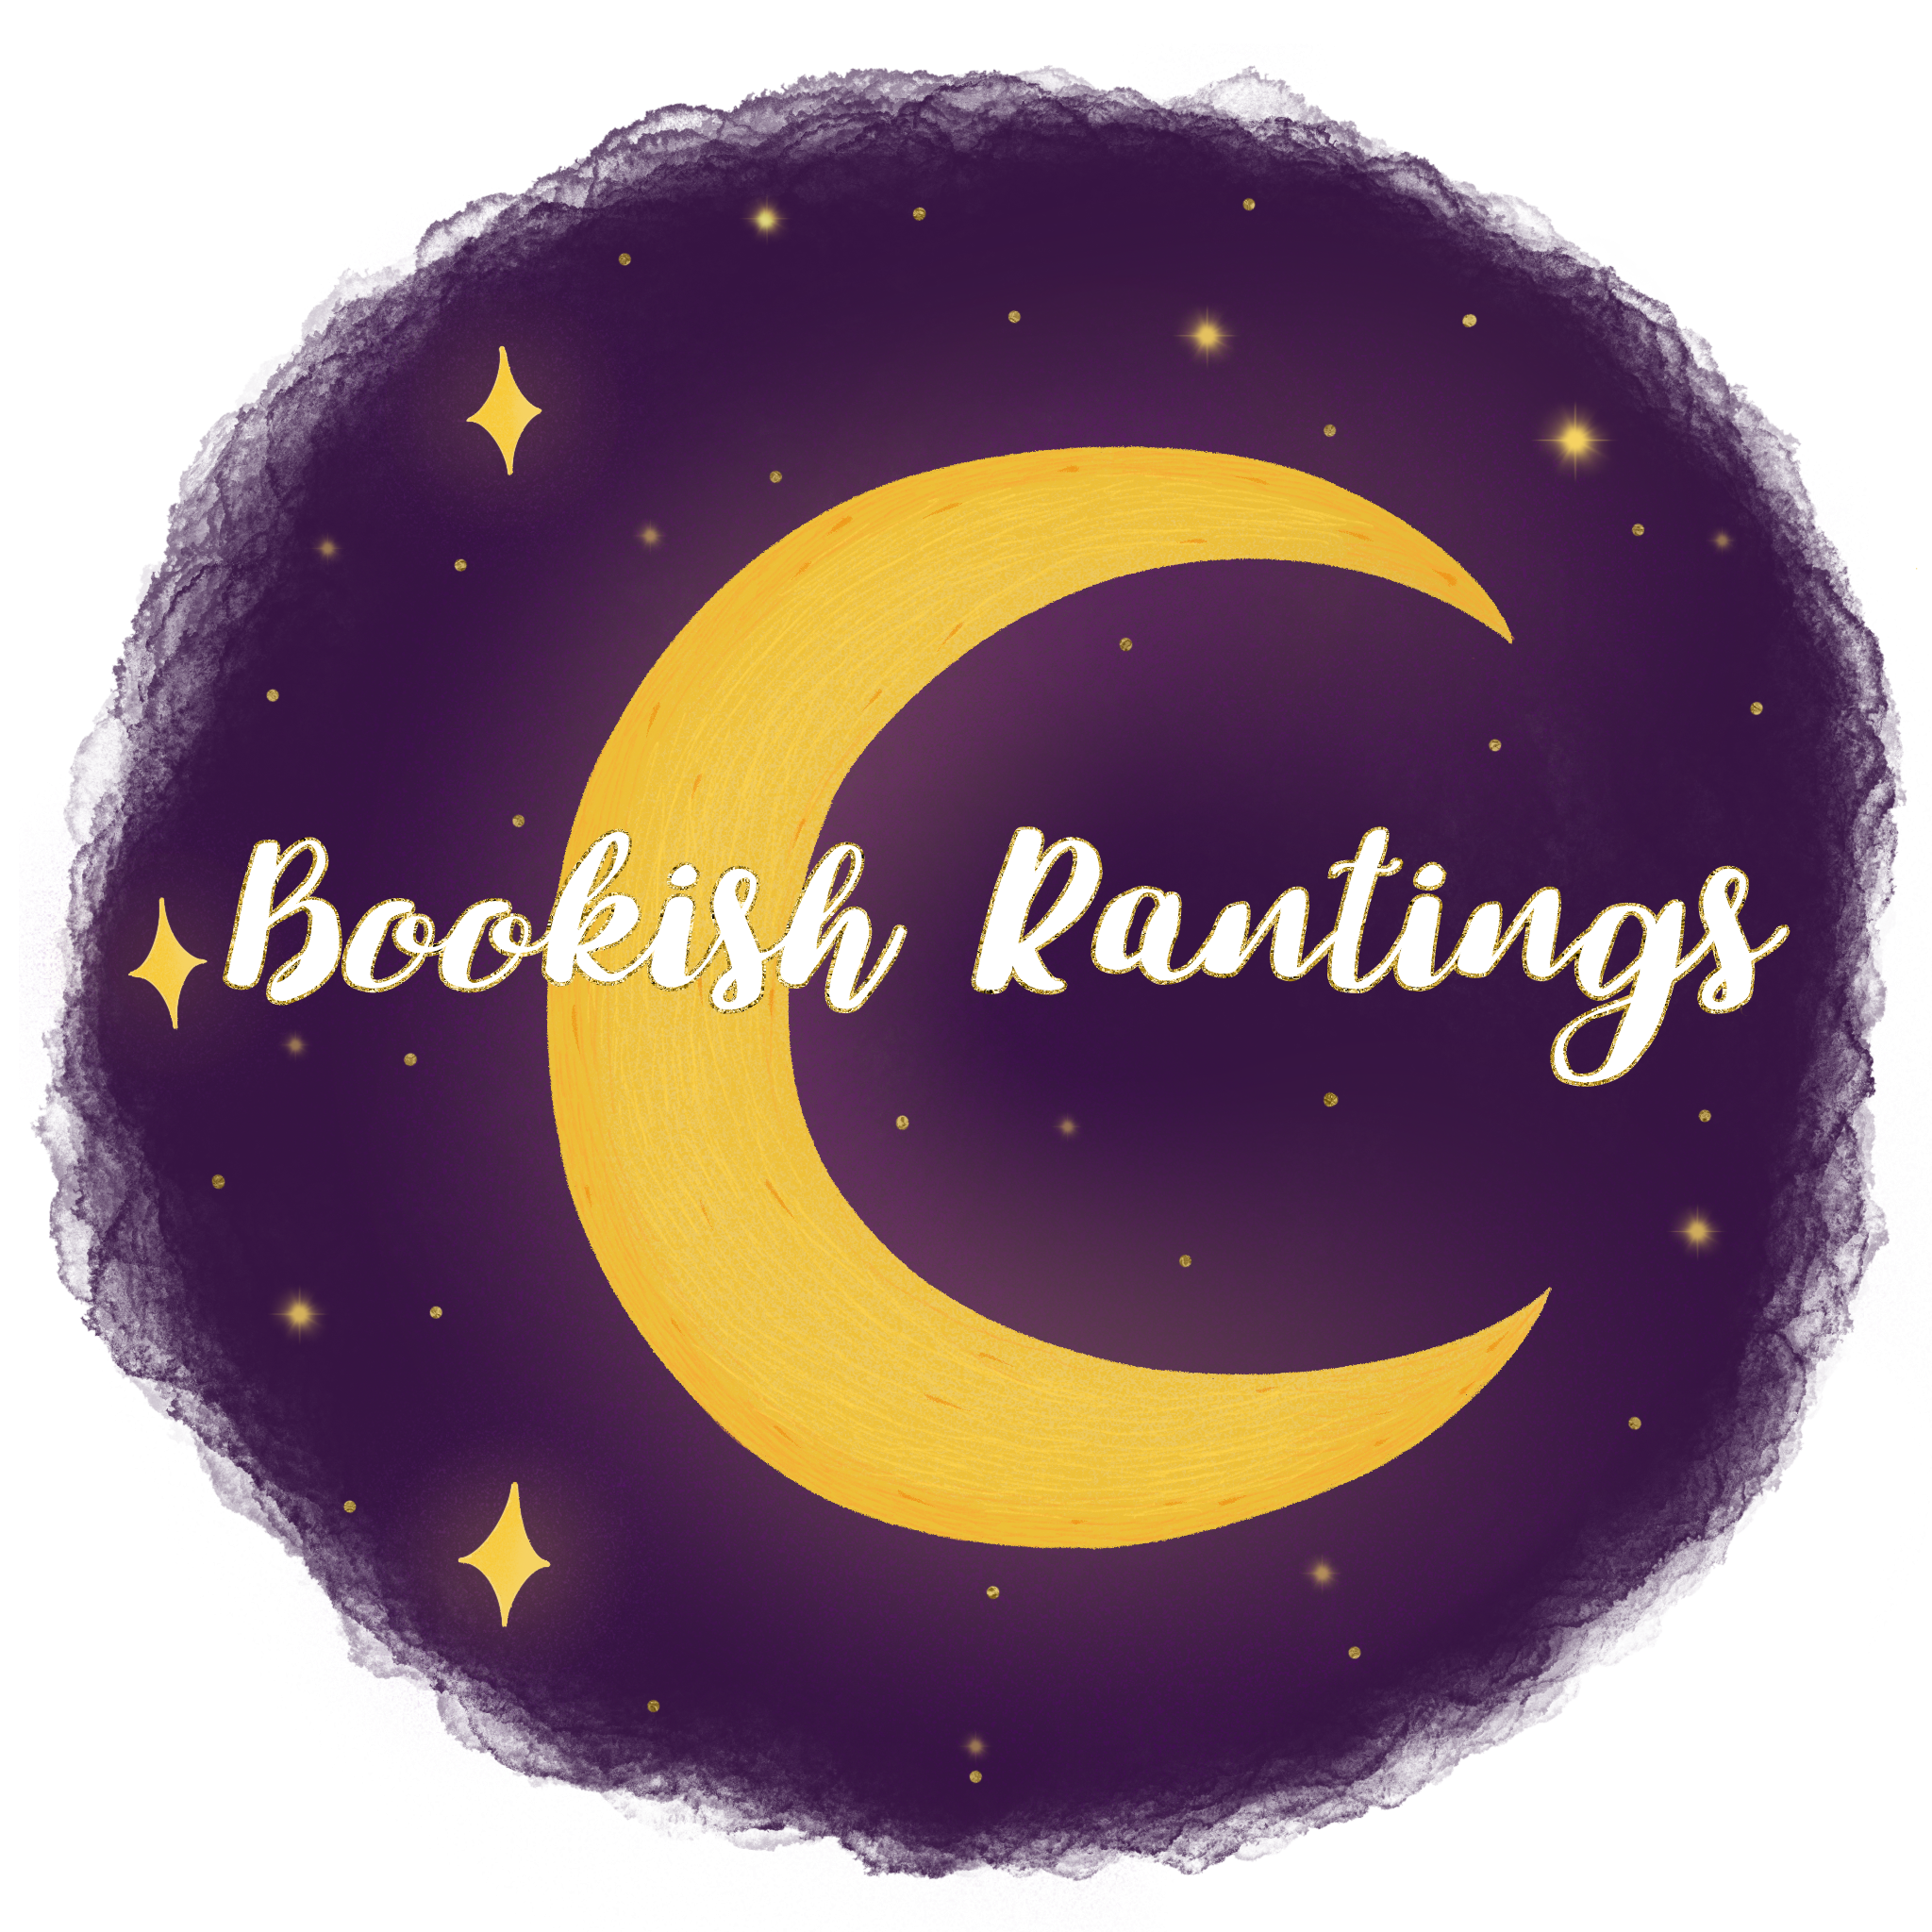 Bookish Rantings